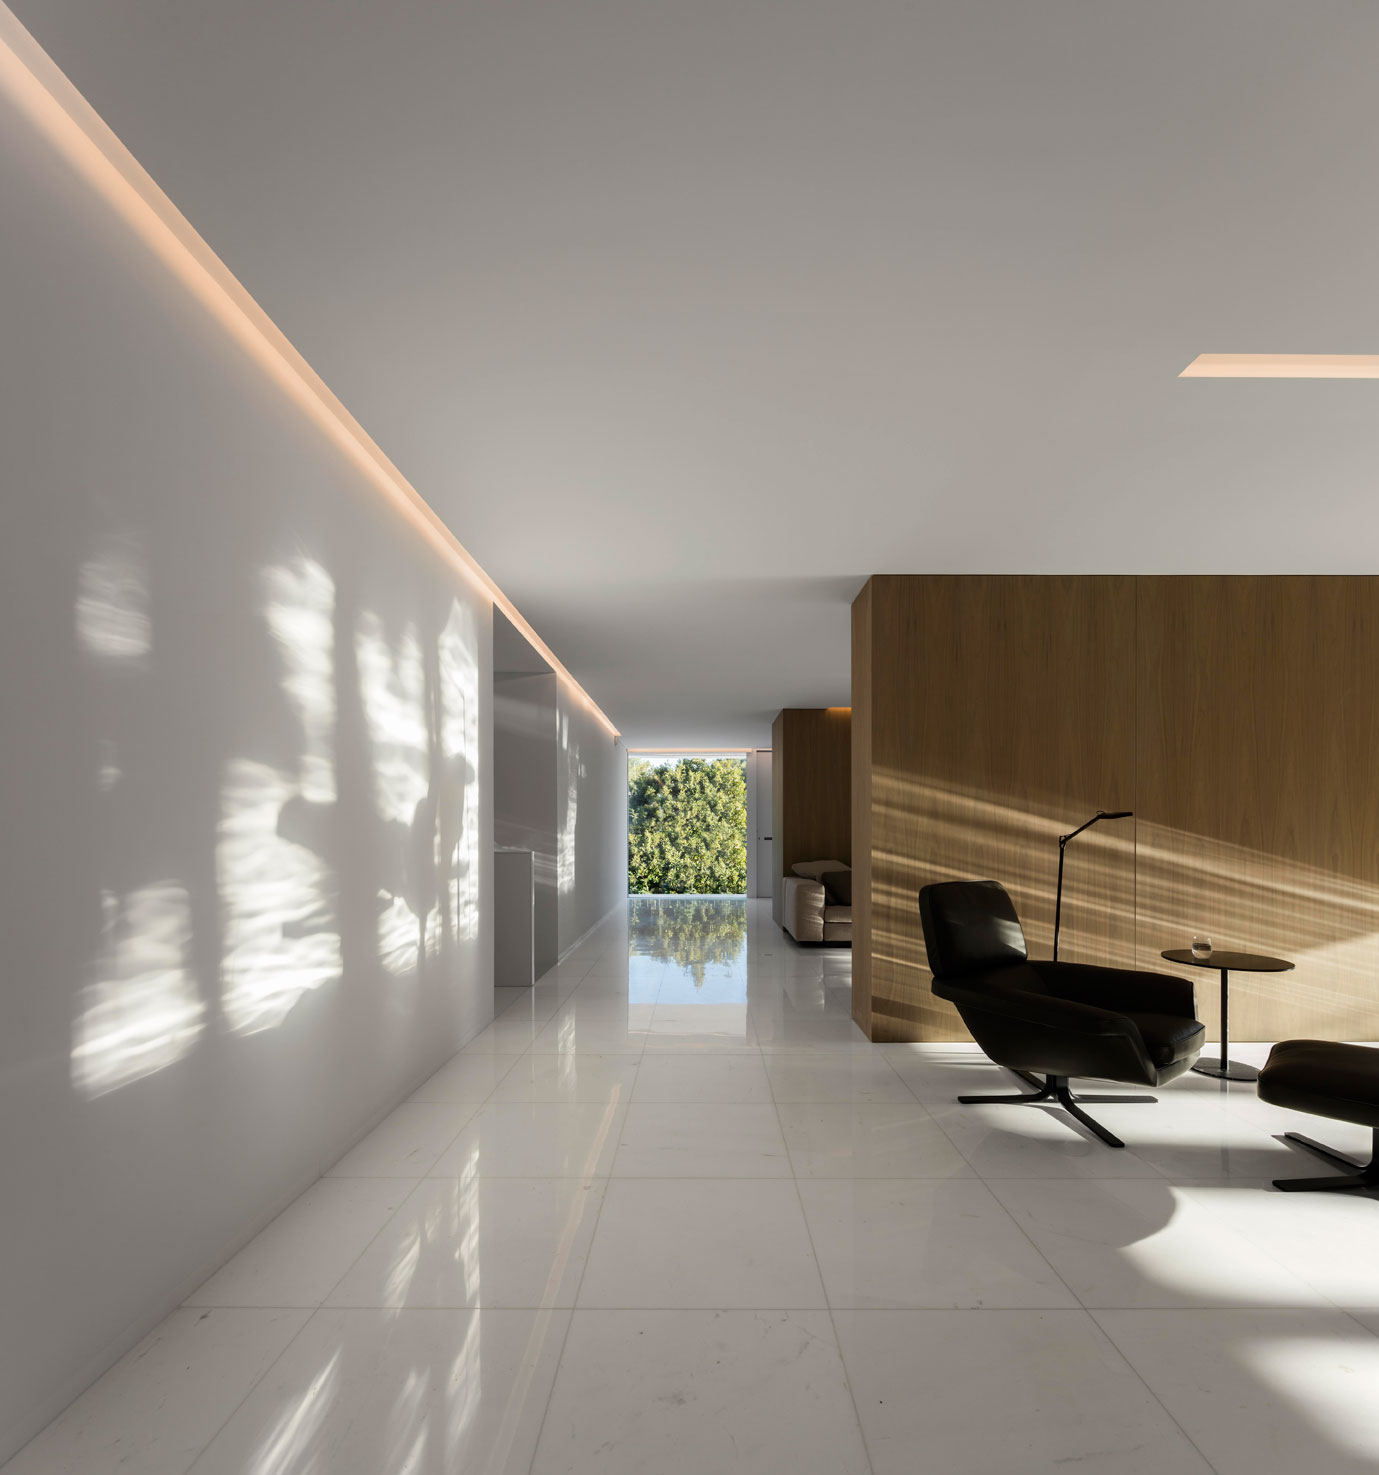 dissenycv-es-fran-silvestre-arquitectos_-house-betwwen-the-pine-forest_-33